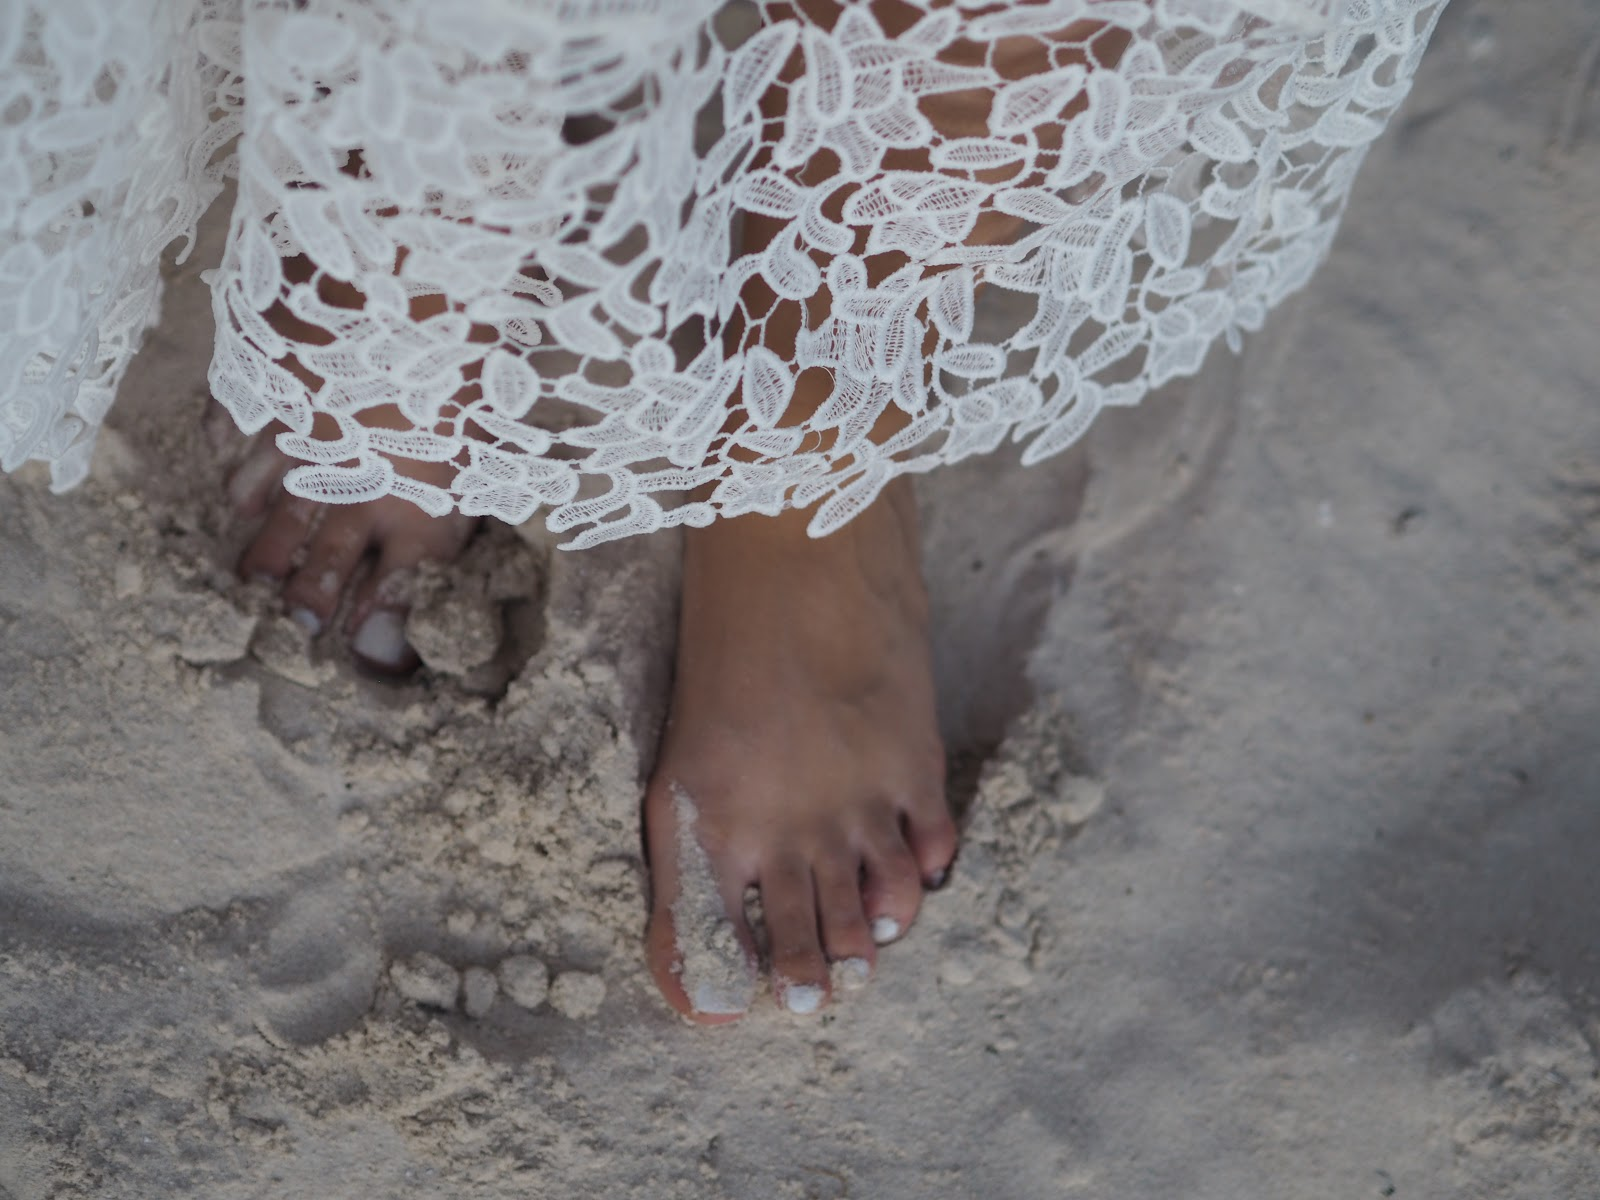 White Dress Sand and Feet